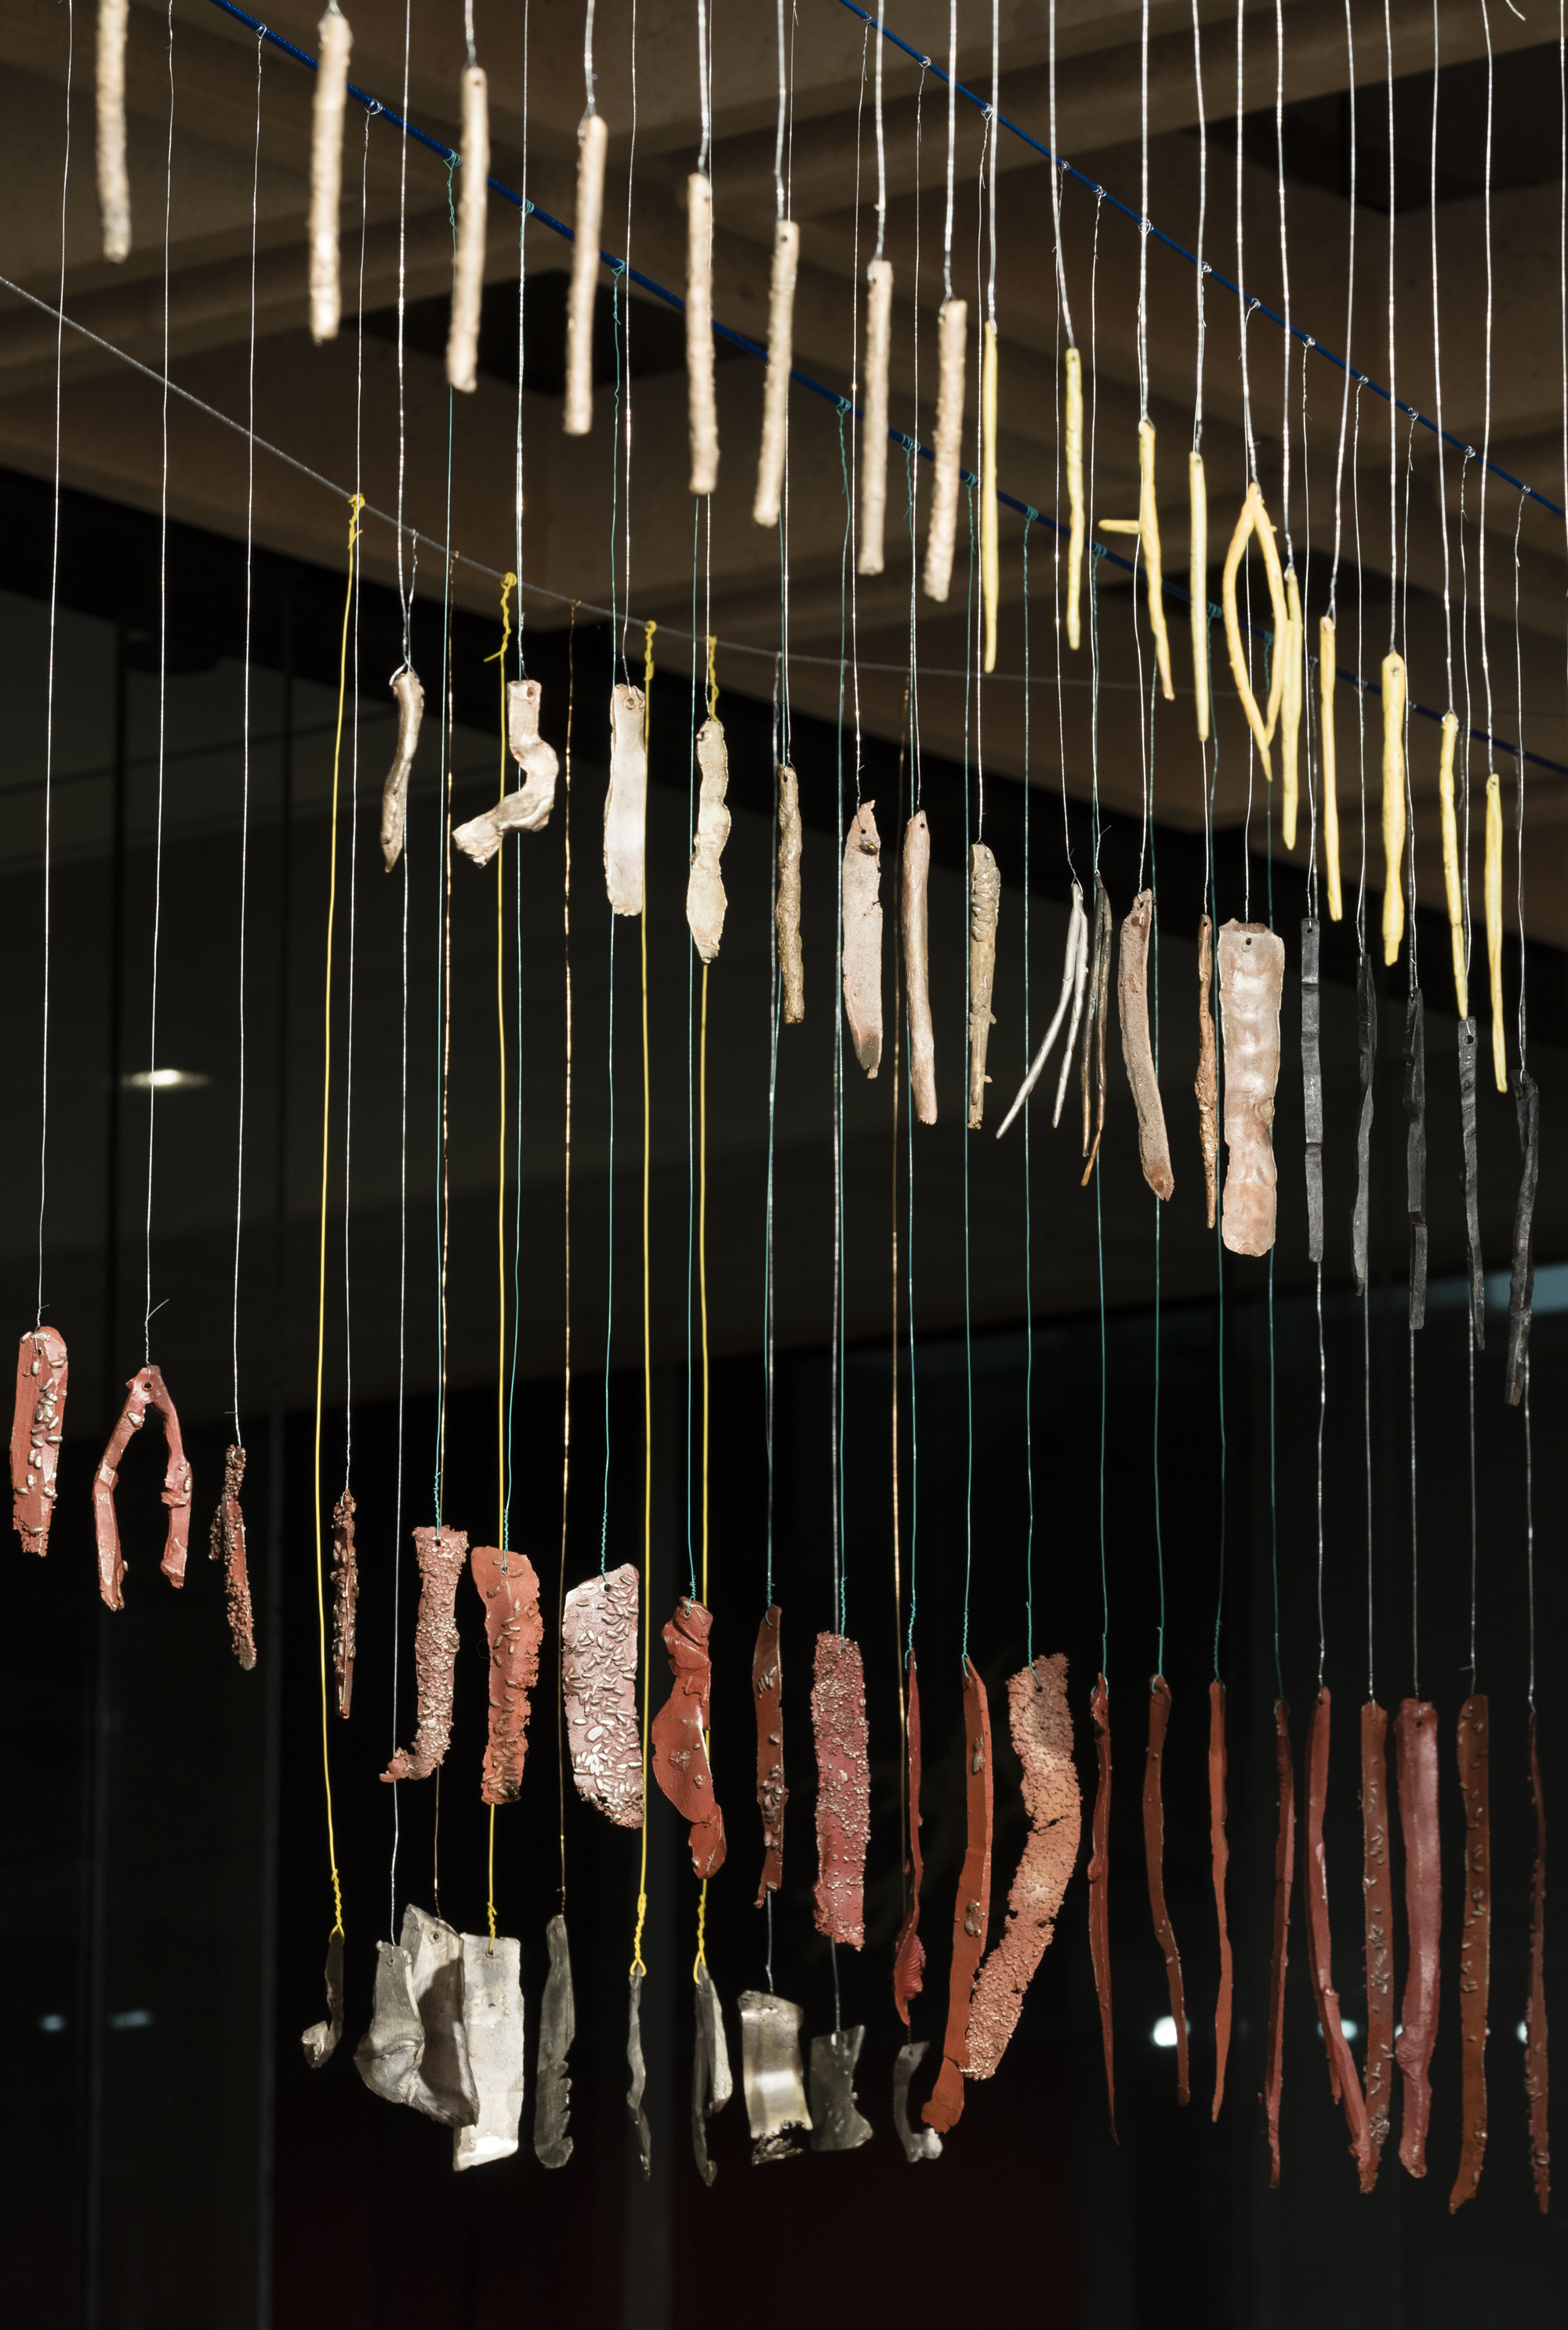 Installation view:  I'm actually weirdly exciting,  the 21st Biennale of Sydney (2018) at the Art Gallery of New South Wales